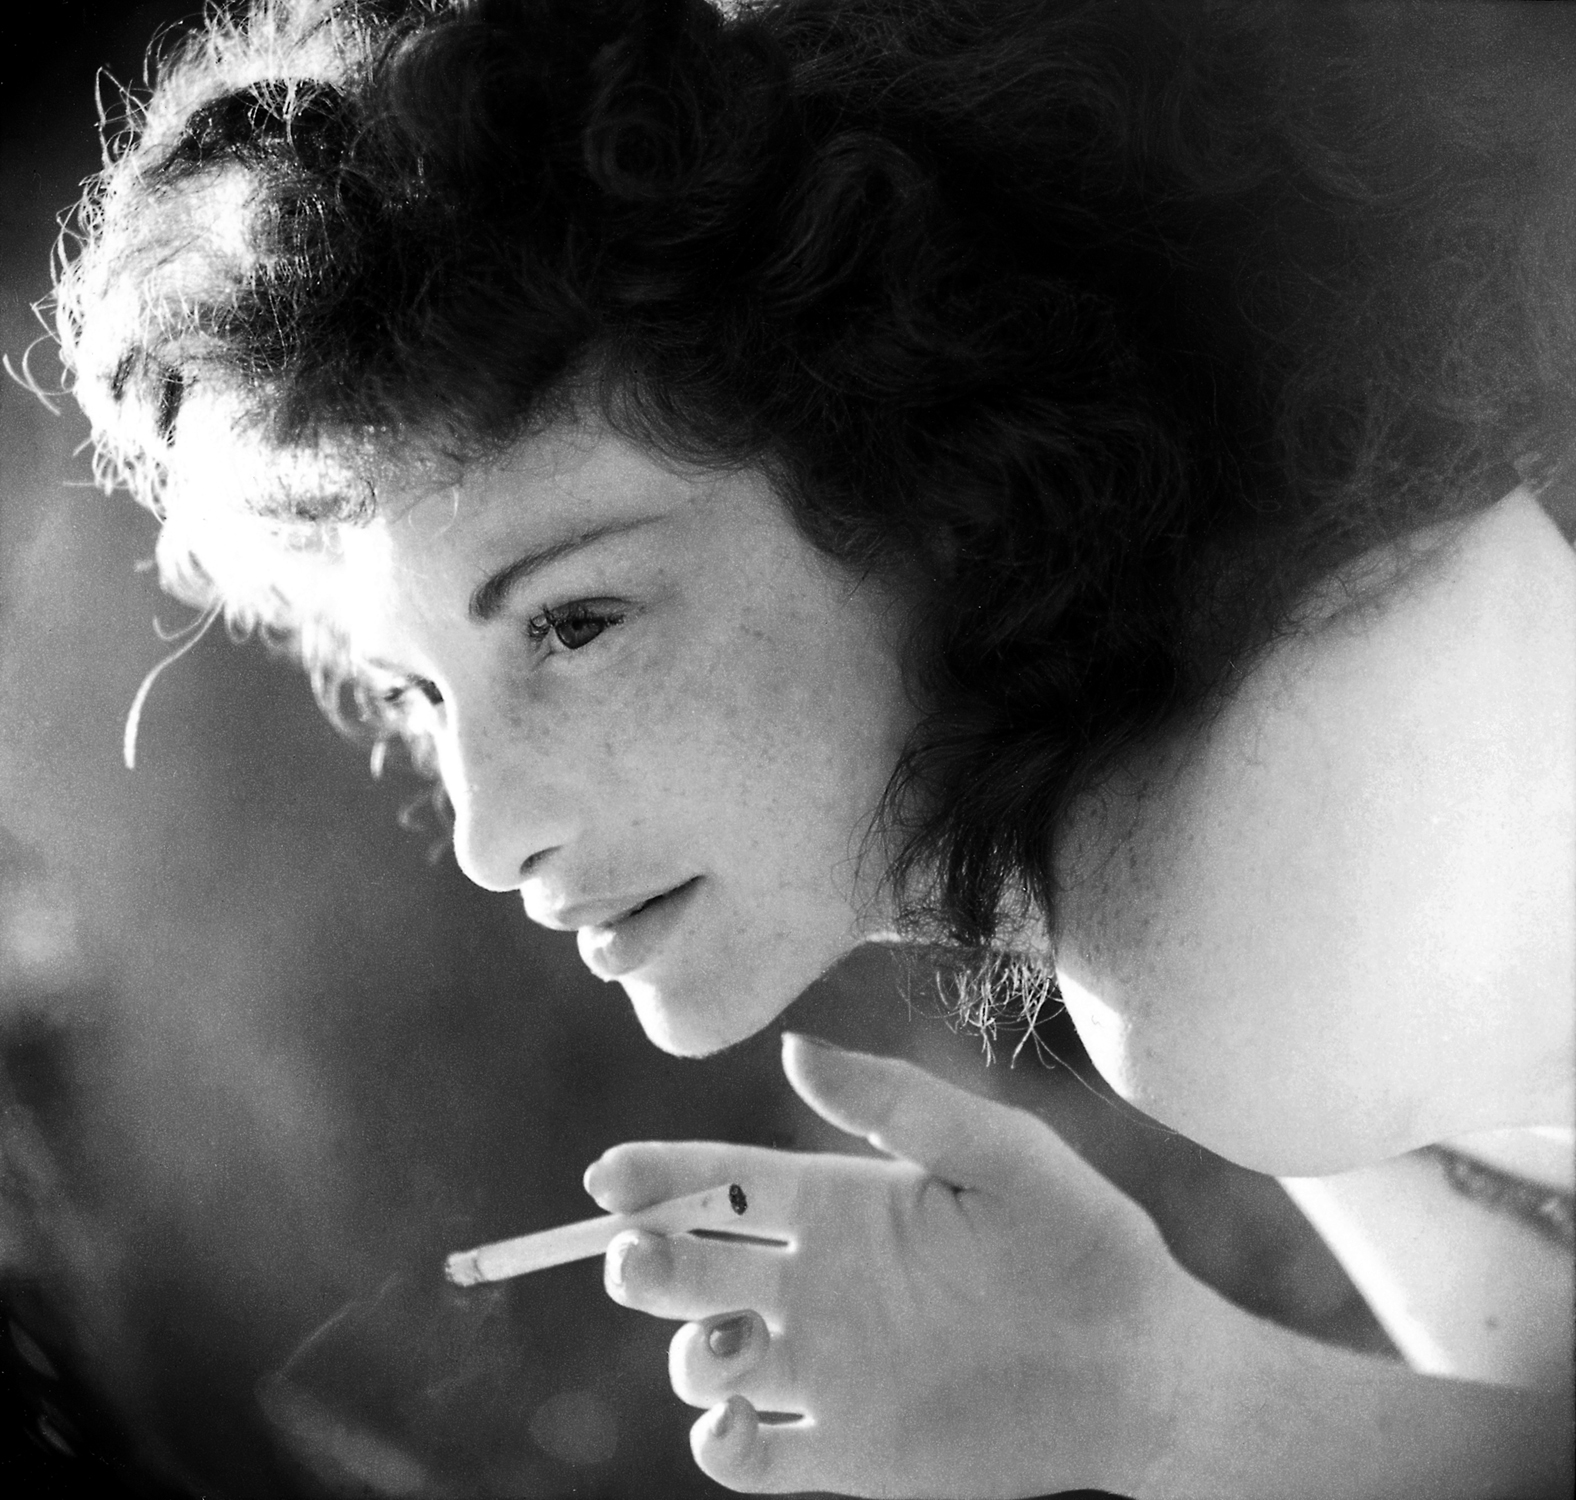 http://verdoux.files.wordpress.com/2010/06/maya-deren-11.jpg